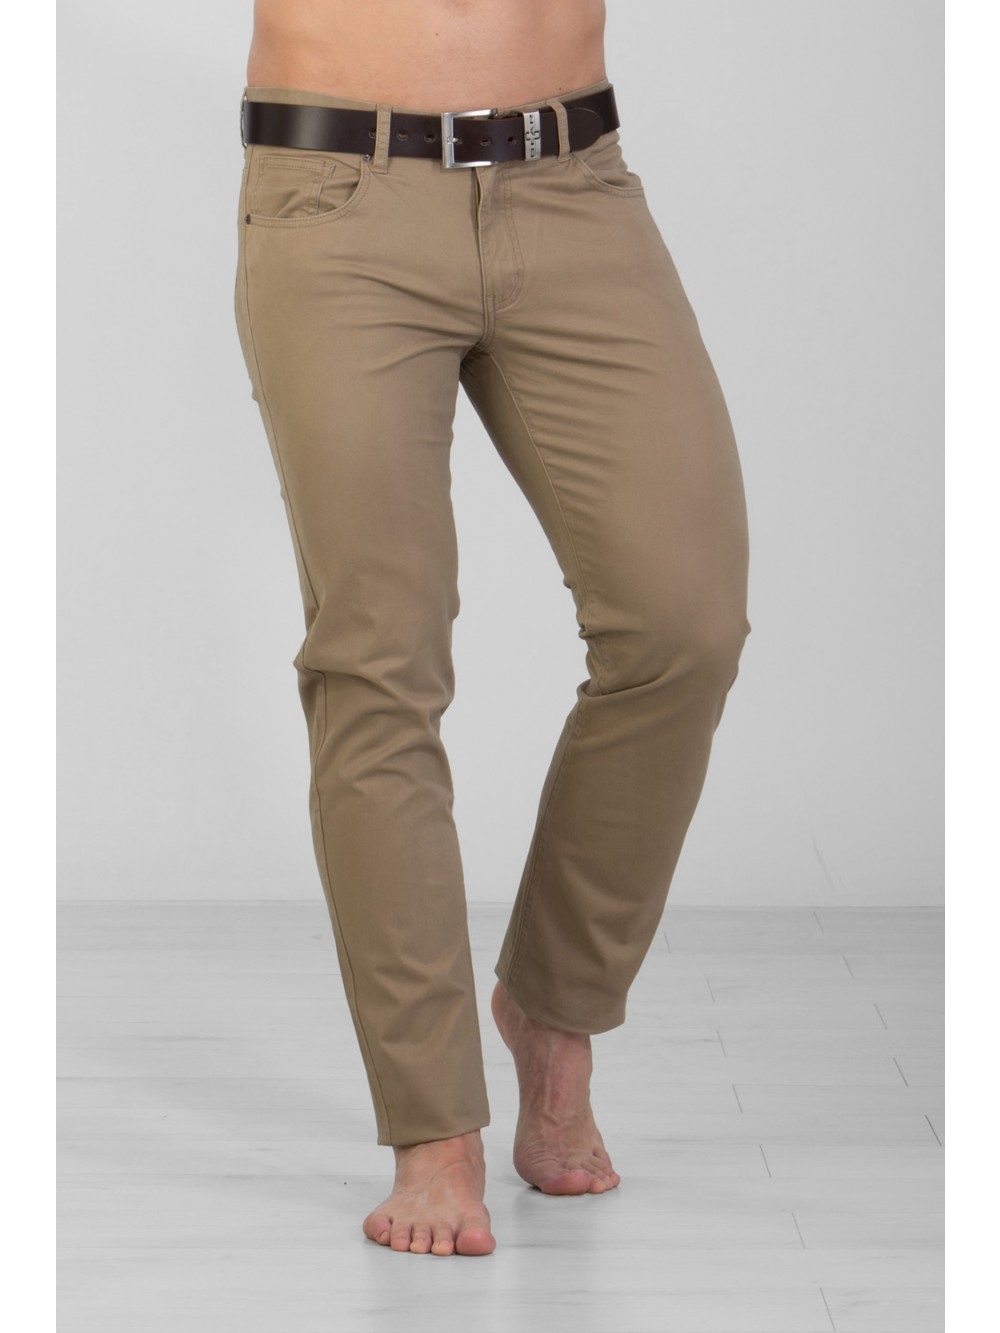 Mens Stretch Slim Fit CHINOS JSM248 - beige